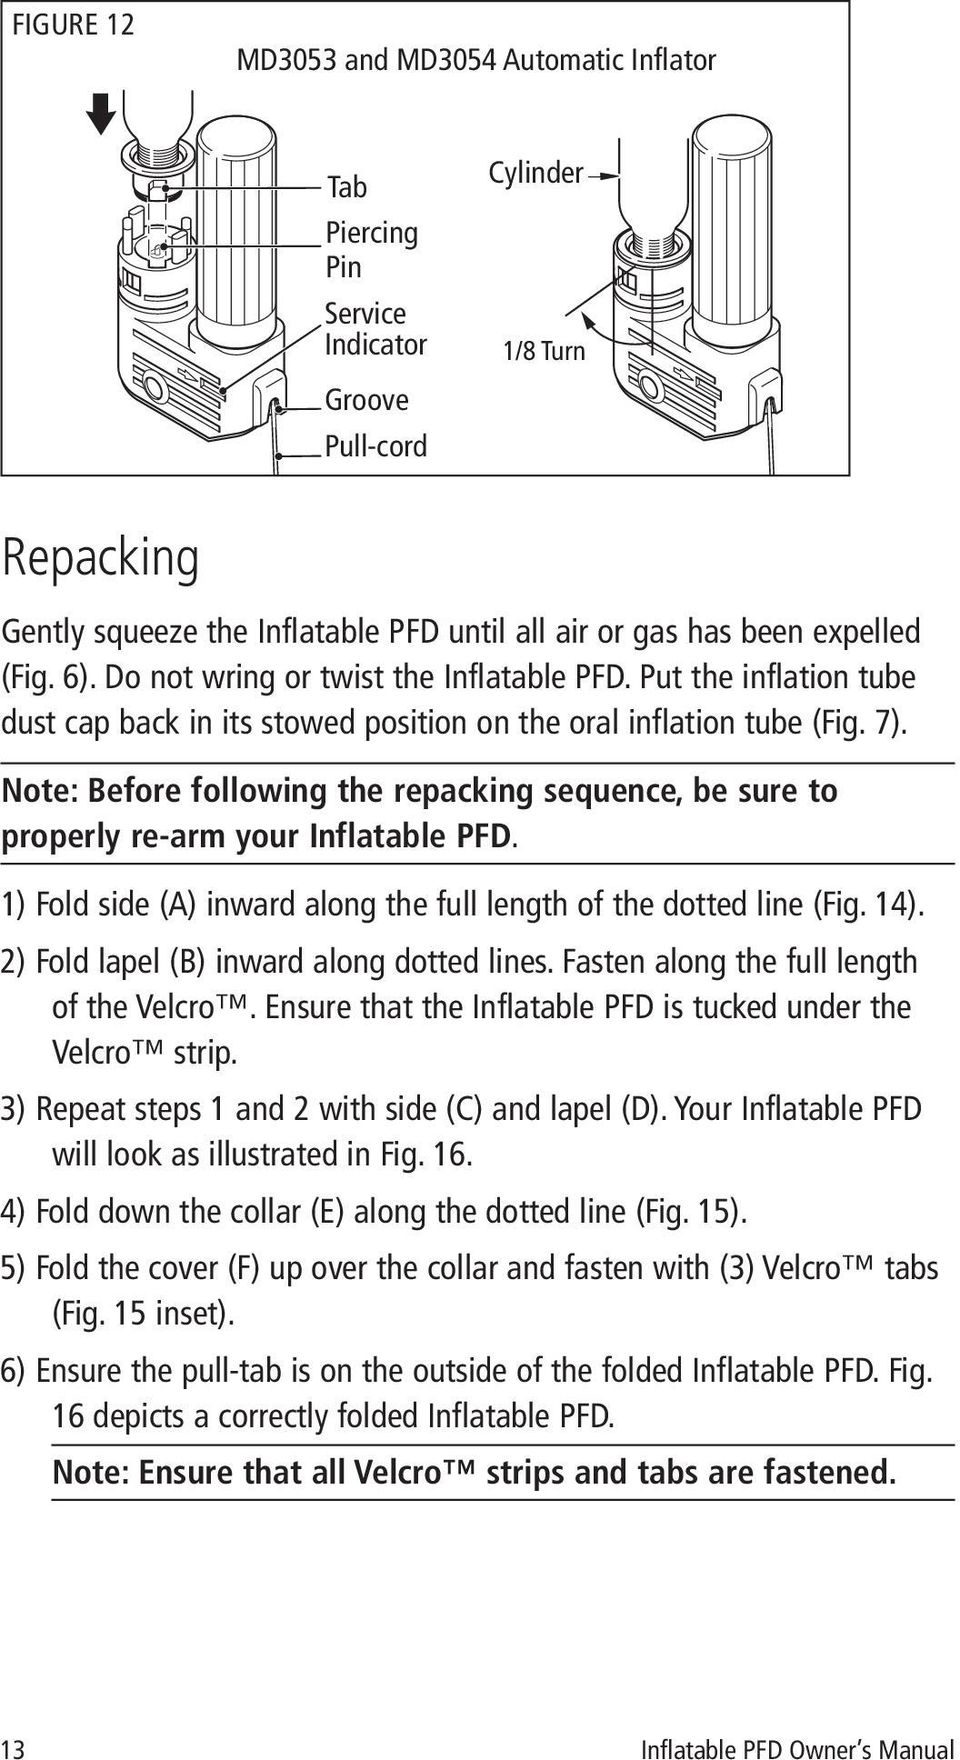 Note: Before following the repacking sequence, be sure to properly re-arm your Inflatable PFD. 1) Fold side (A) inward along the full length of the dotted line (Fig. 14).